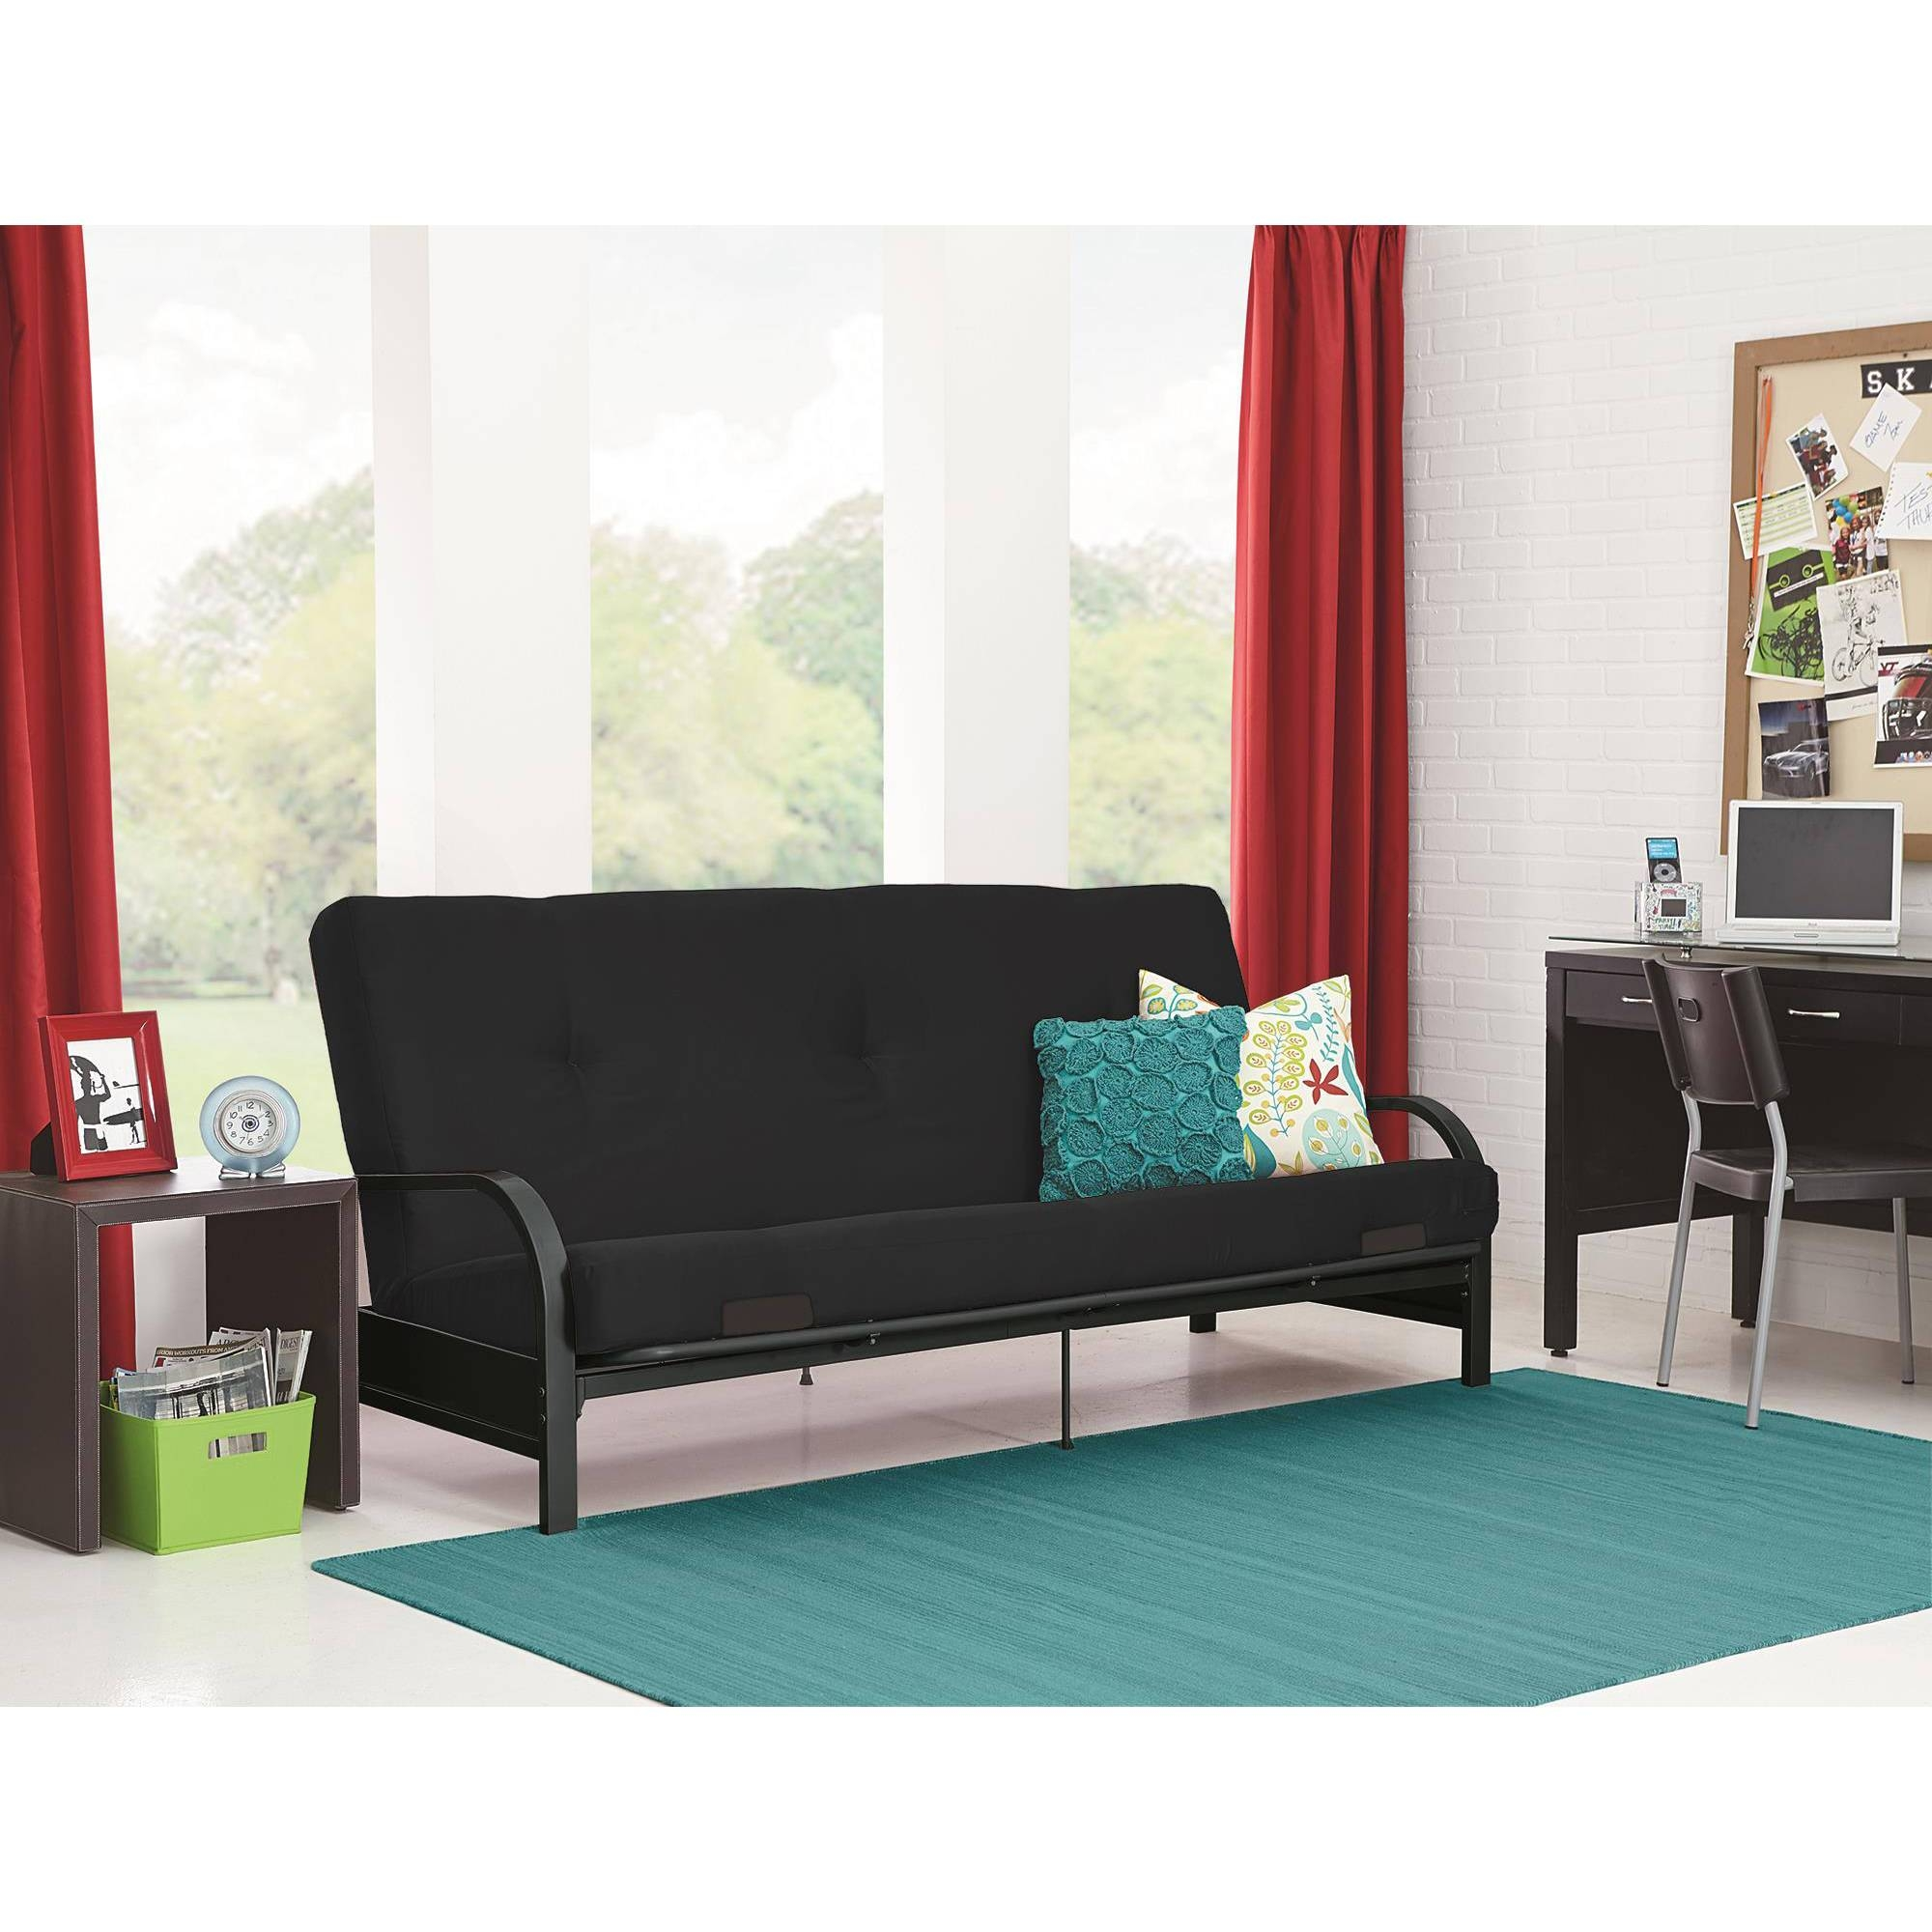 Futons, Futon Beds, Sofa Beds - Walmart with Storage Sofa Beds (Image 11 of 30)